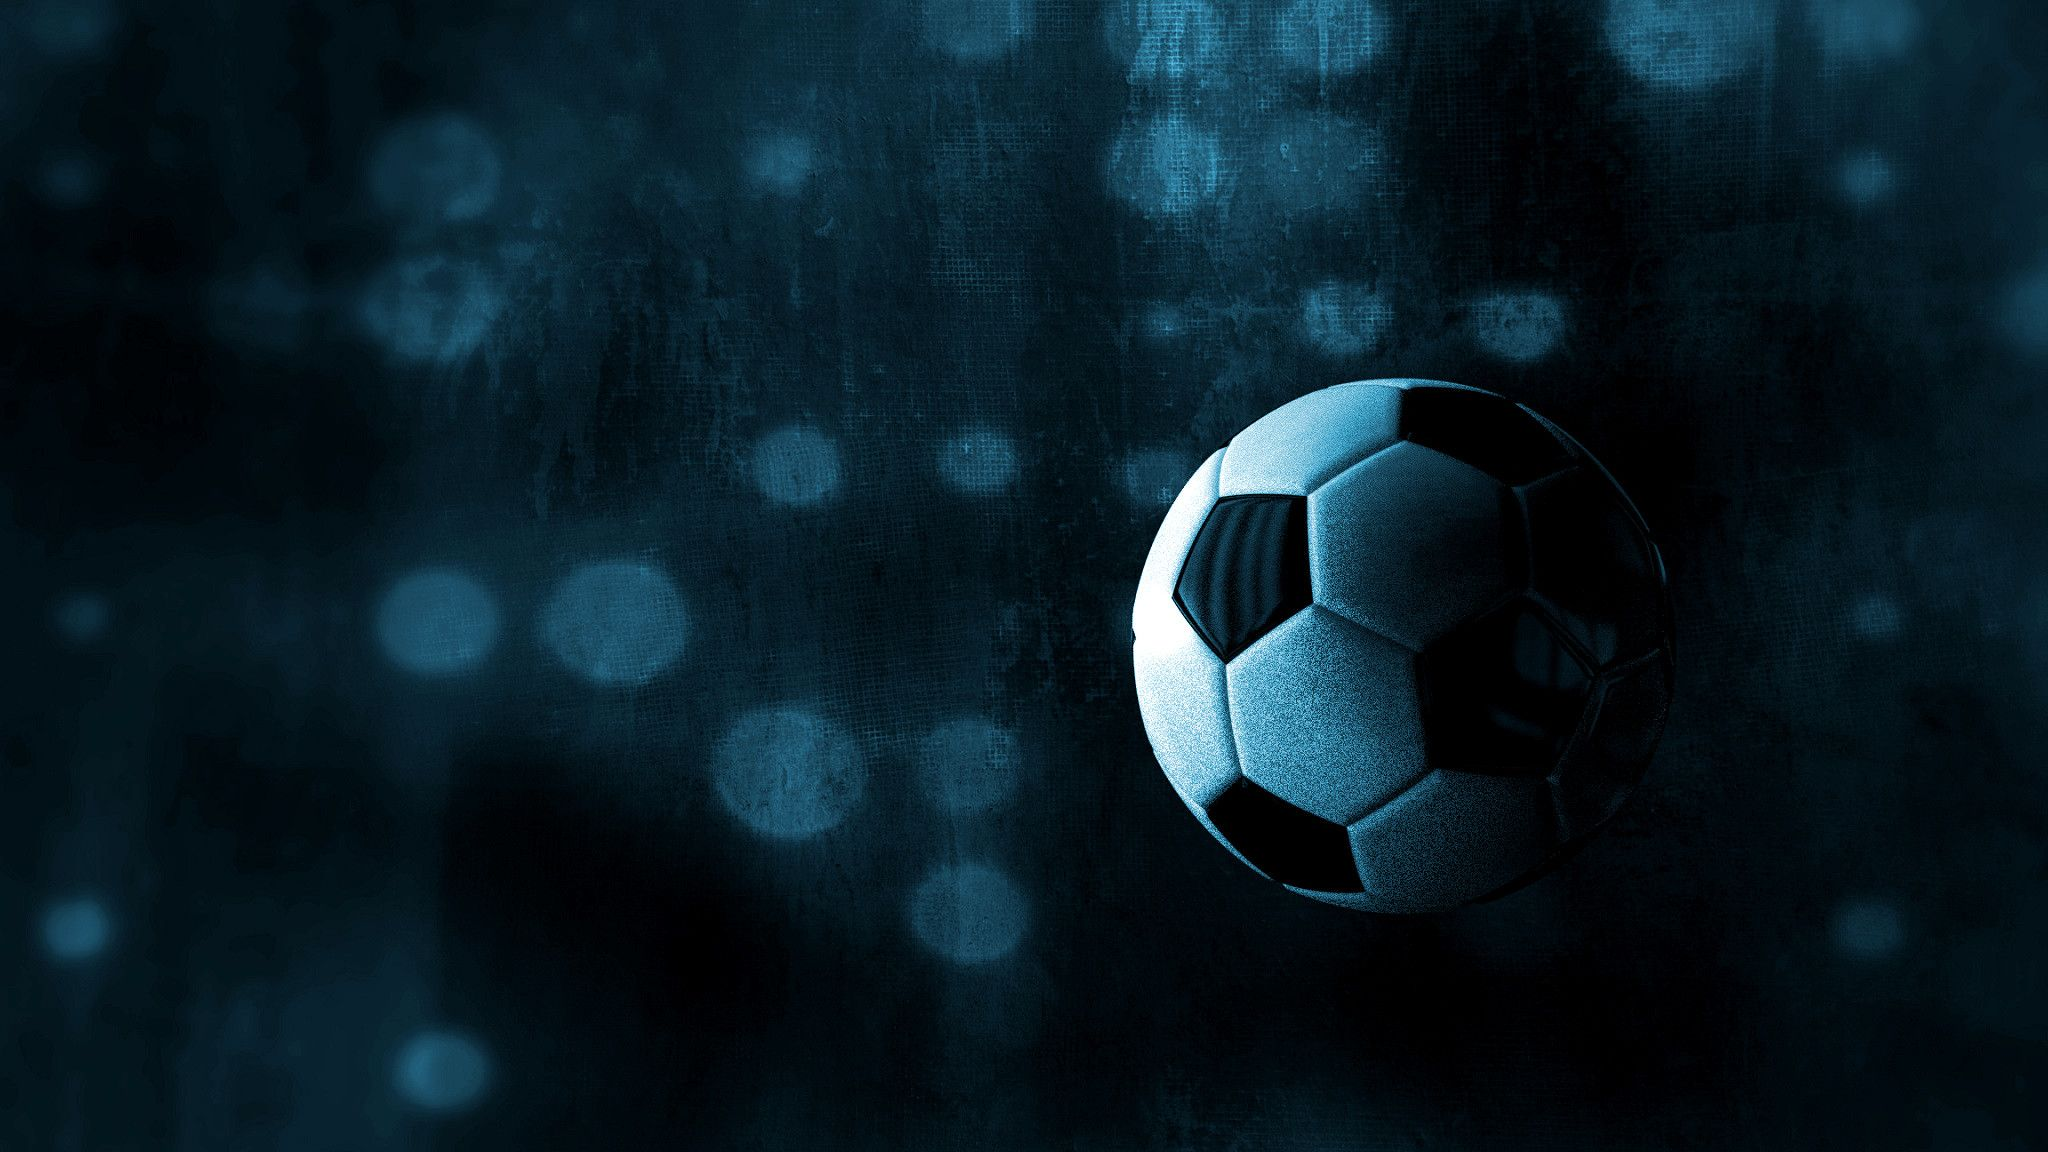 Dark Soccer Wallpapers   Top Dark Soccer Backgrounds 2048x1152